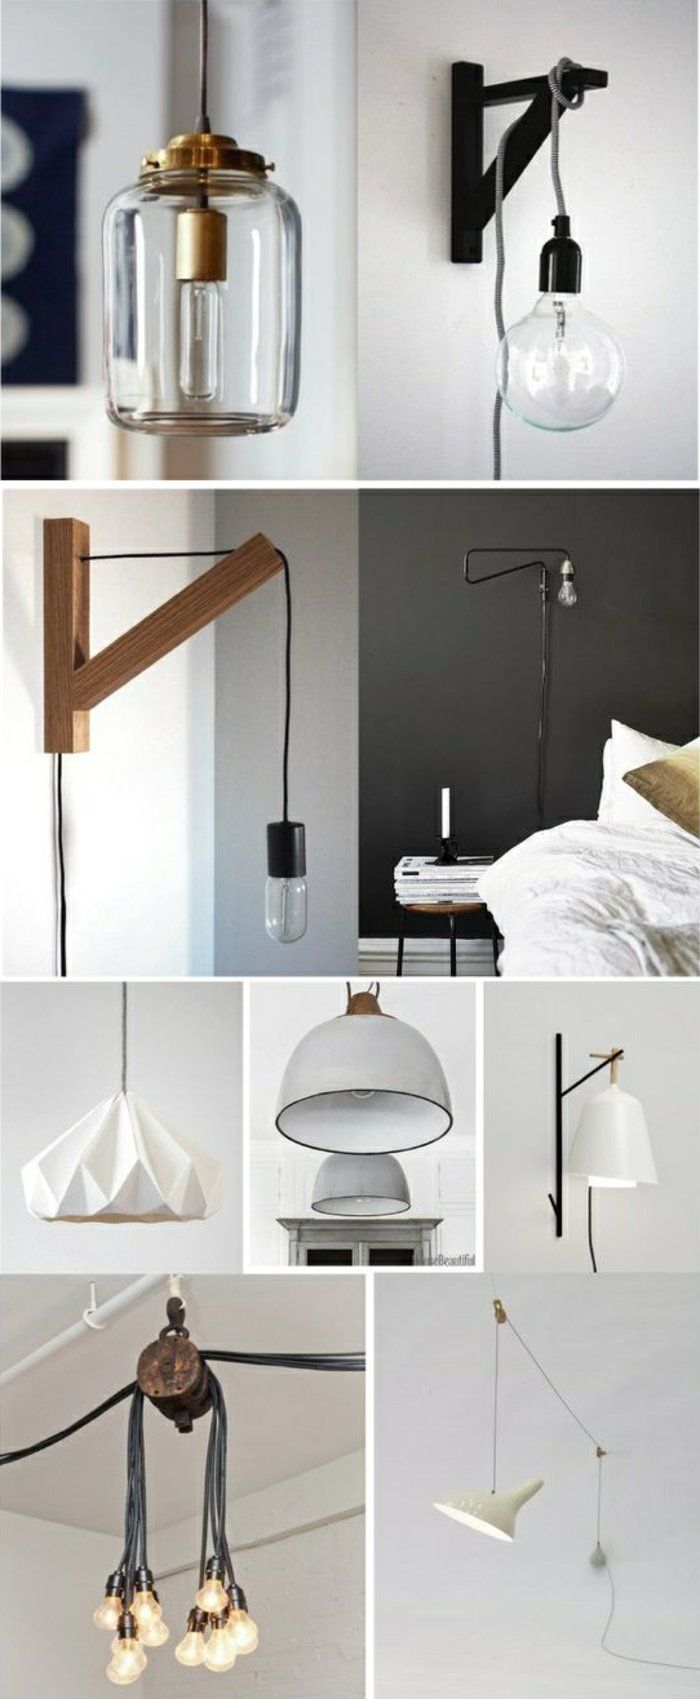 die besten 25 lampen selber machen ideen auf pinterest. Black Bedroom Furniture Sets. Home Design Ideas